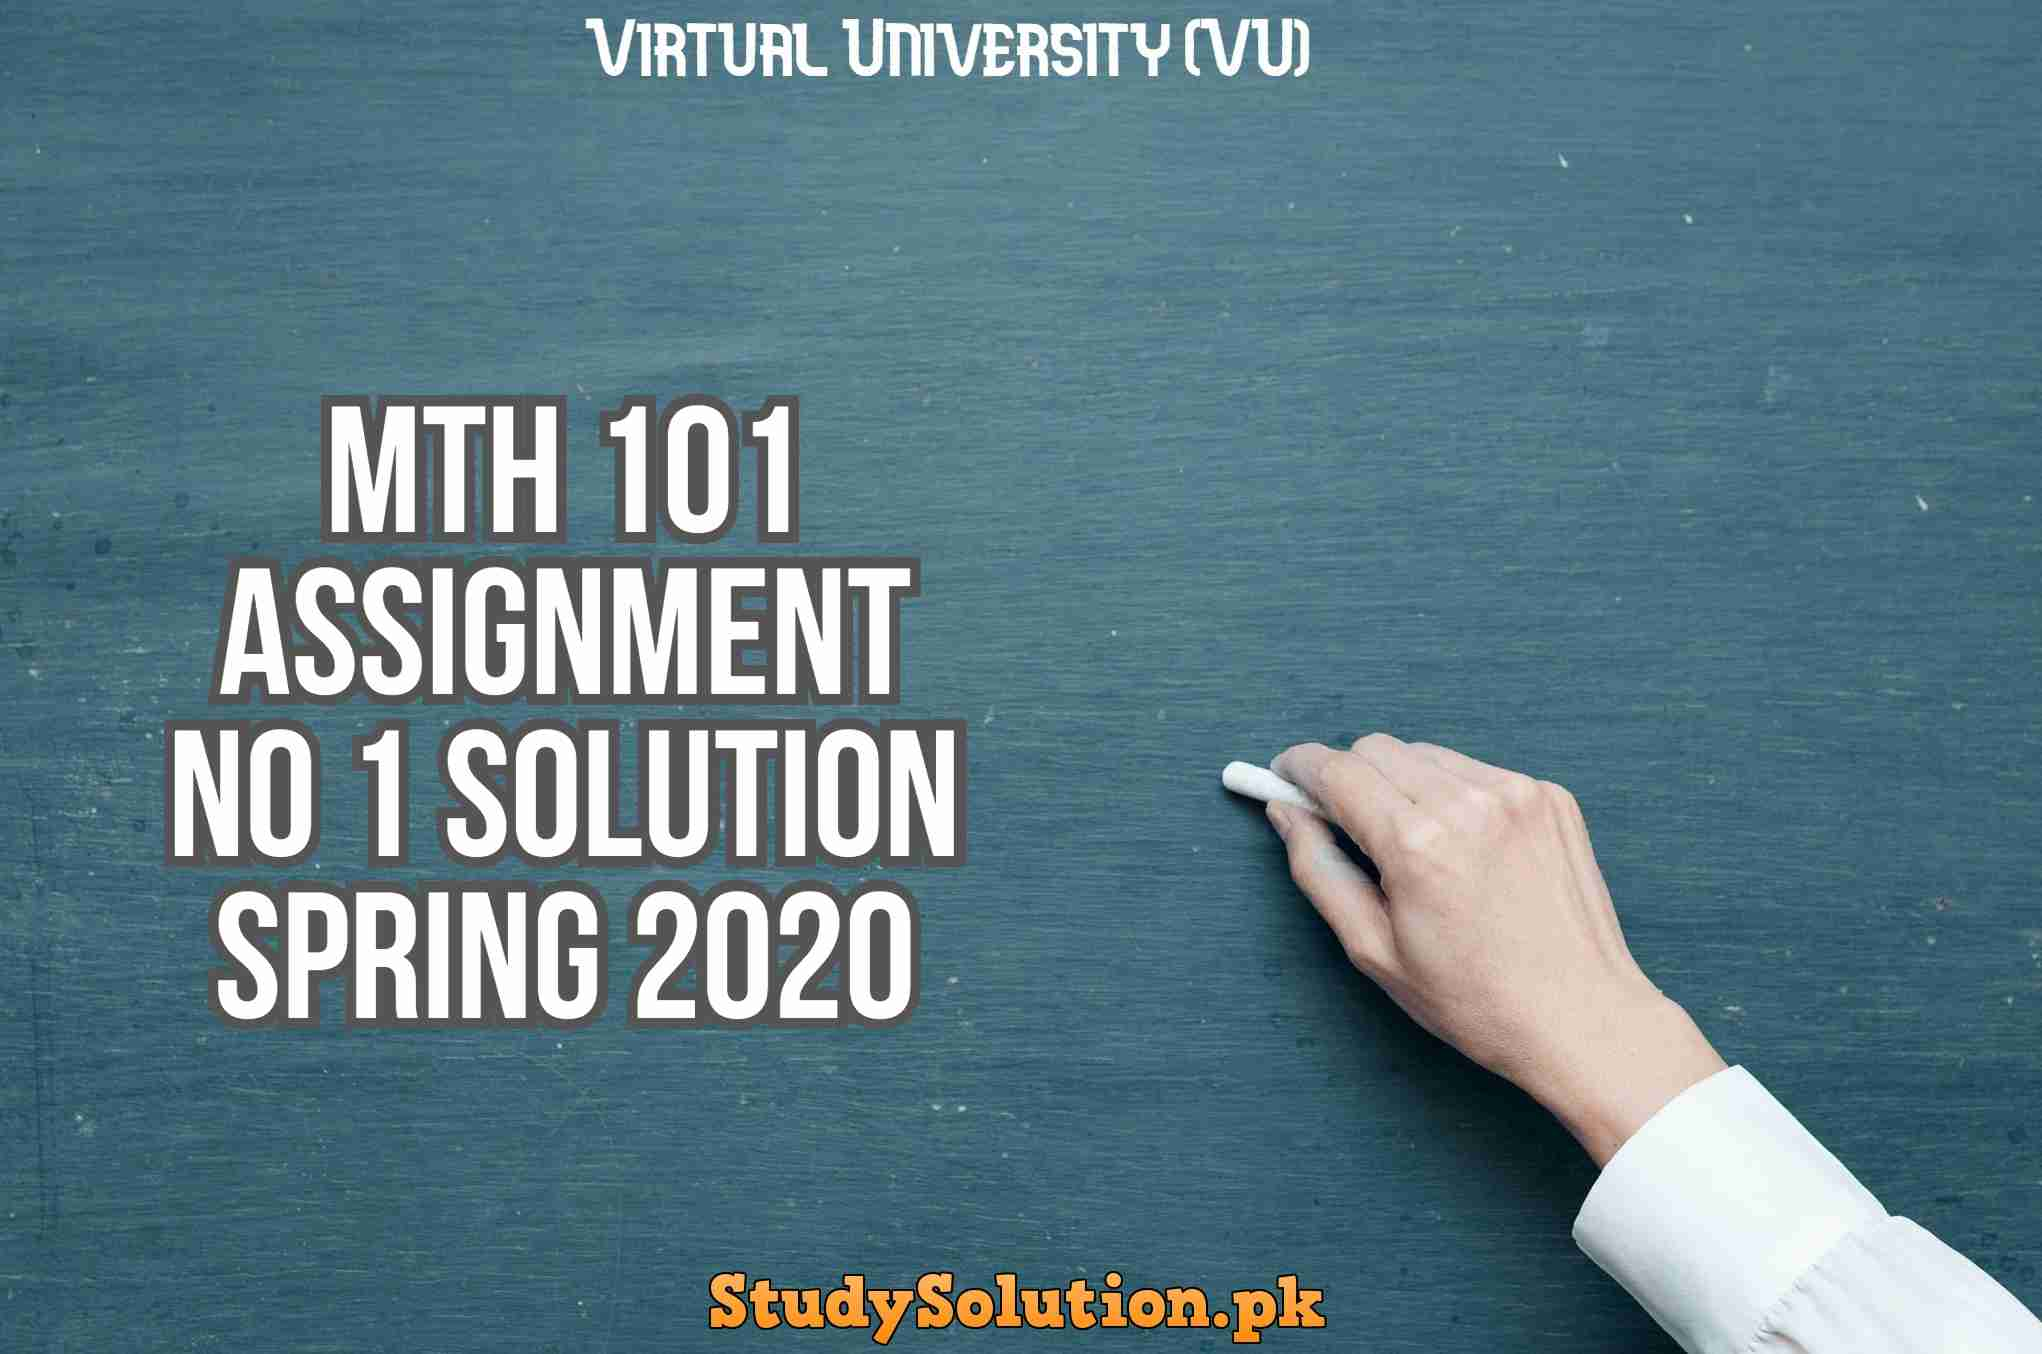 MTH 101 Assignment No 1 Solution Spring 2020